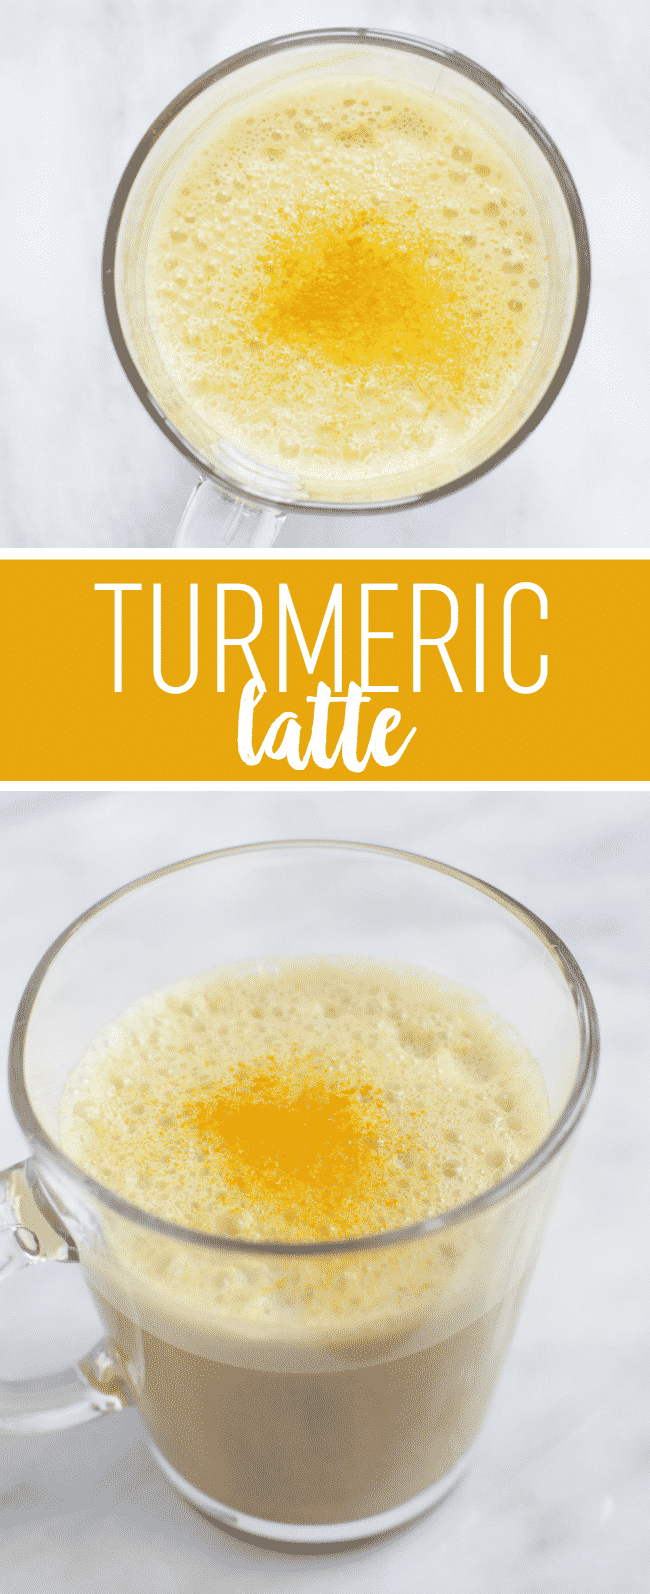 Turmeric Latte Recipe - This easy healing turmeric latte (made with golden paste) is great for fighting disease and inflammation.